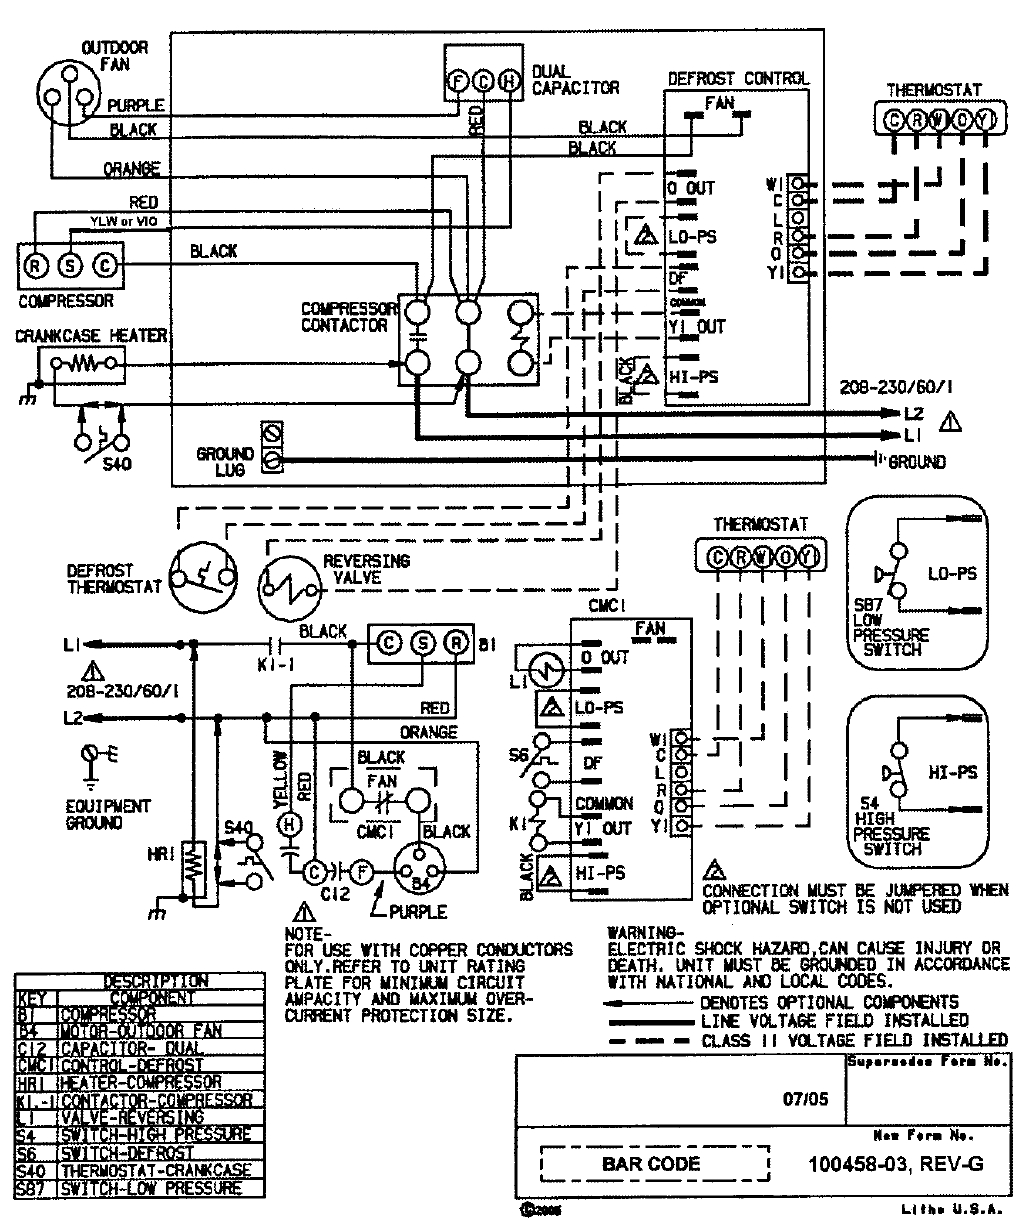 Ducane Heat Pump Wiring Diagram - Ducane Furnace Wiring Diagram Facybulka Me and 13l